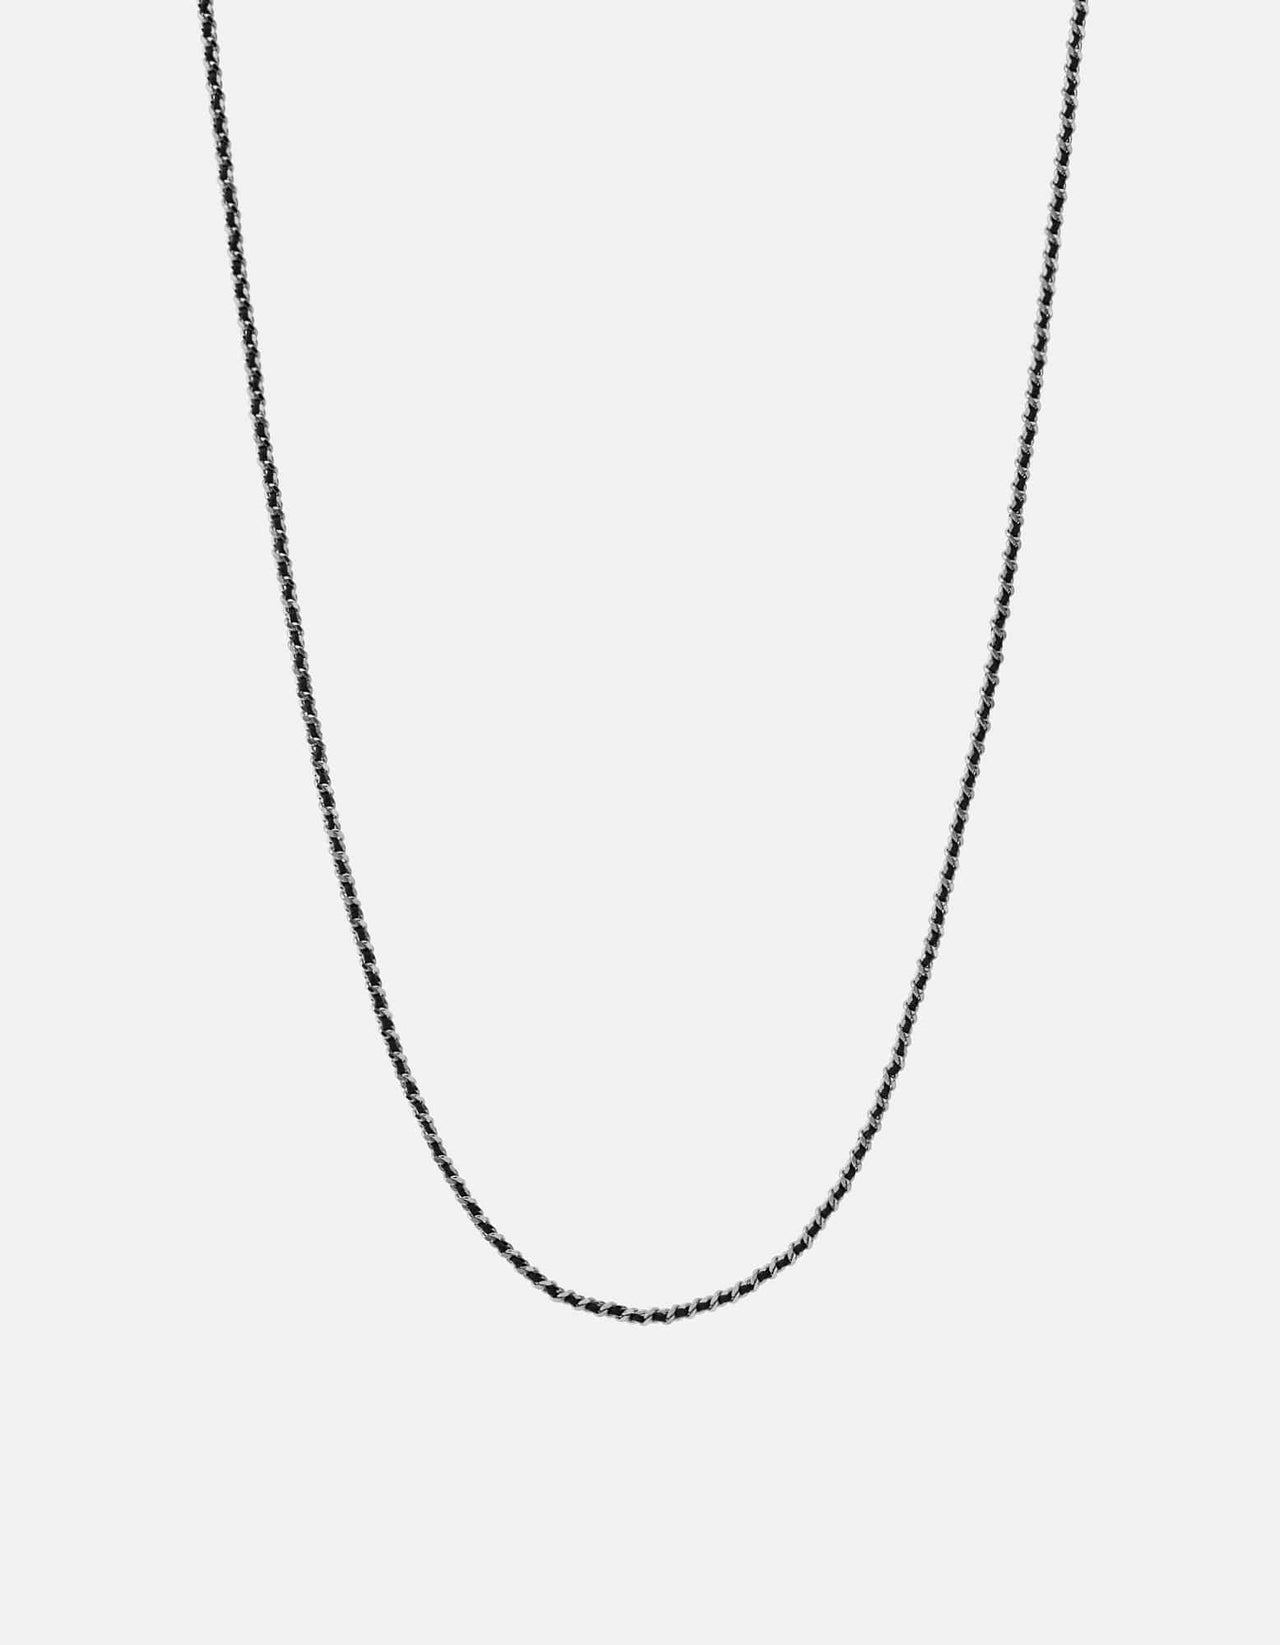 2mm Woven Chain Necklace Sterling Silver Women S Necklaces Miansai